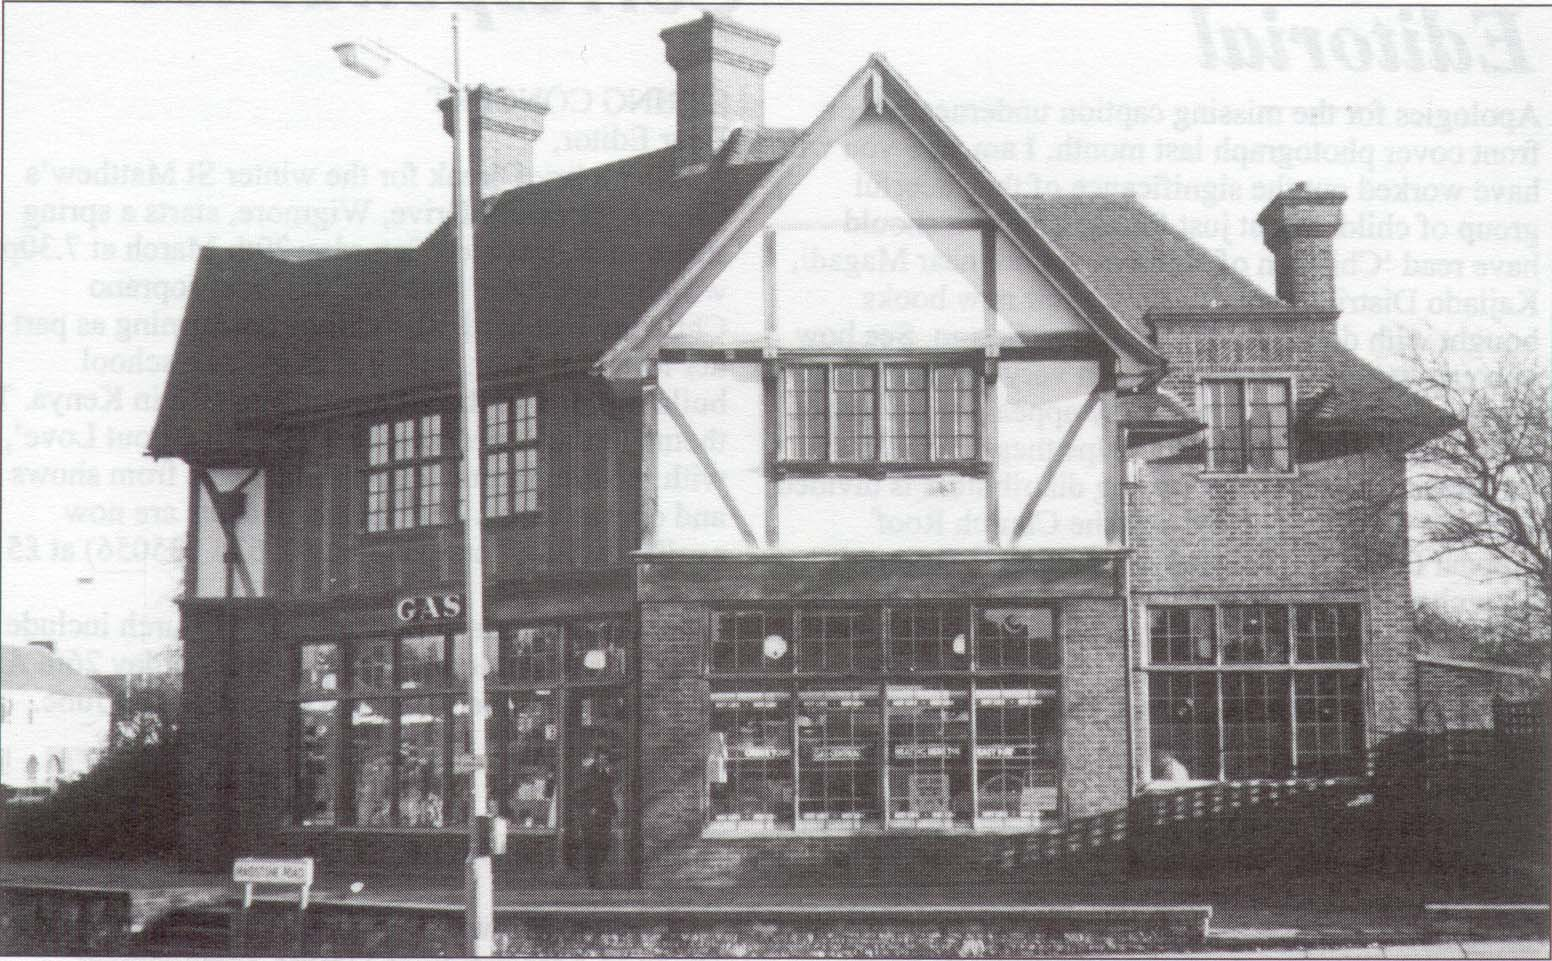 Gas showroom Rainham now Manor Farm Rainham 1930